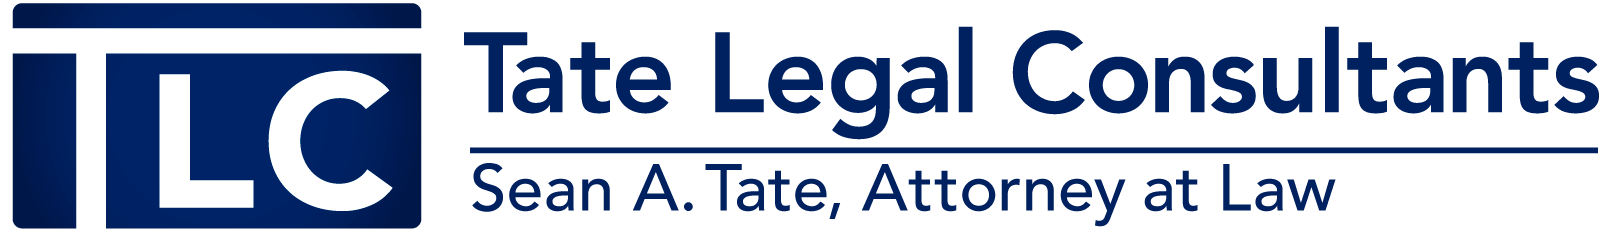 Tate Legal Consultants